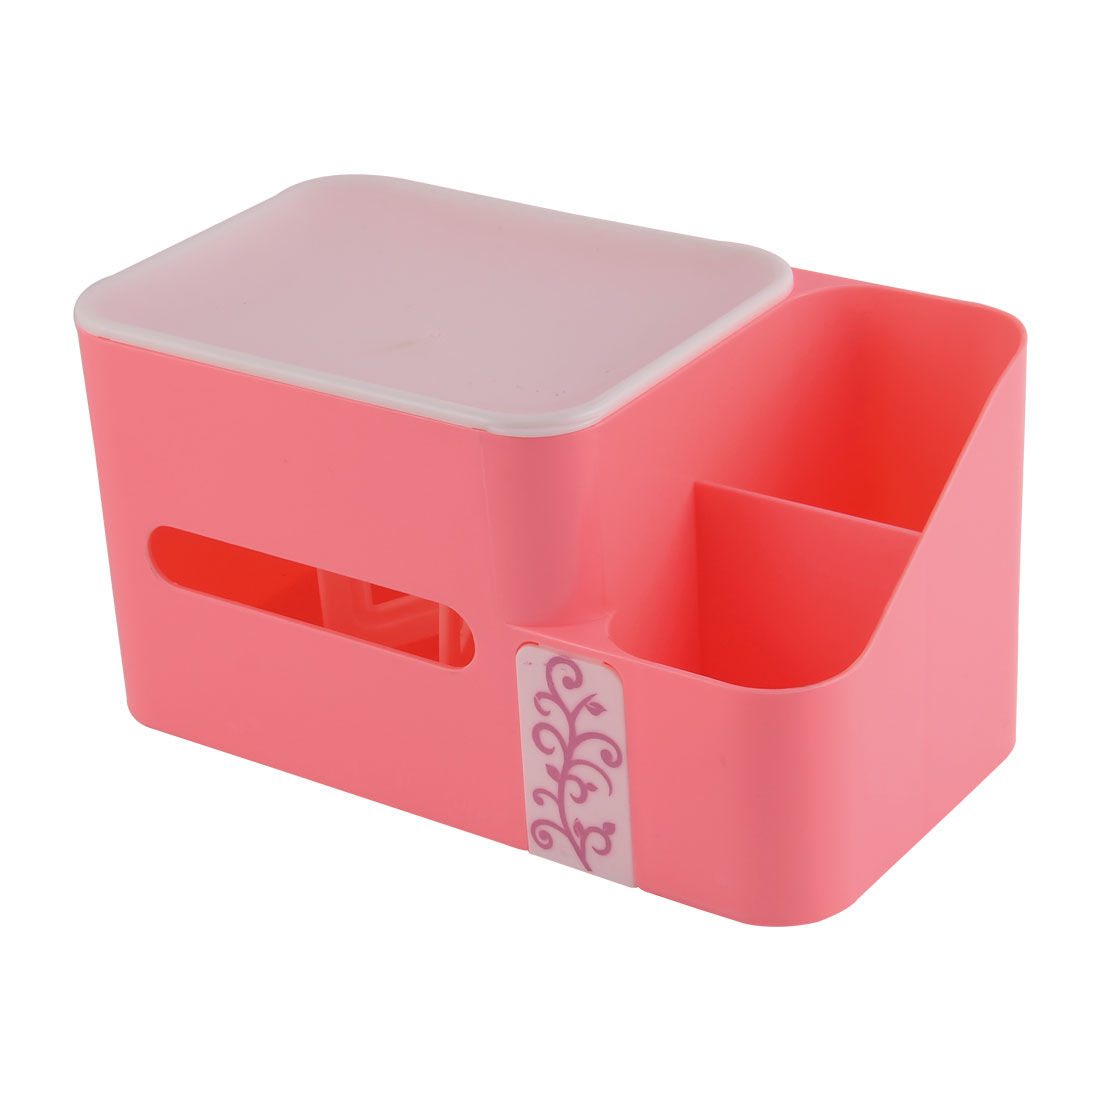 Home Plastic Rectangle Shaped Paper Napkin Tissue Box Container Honder Pink